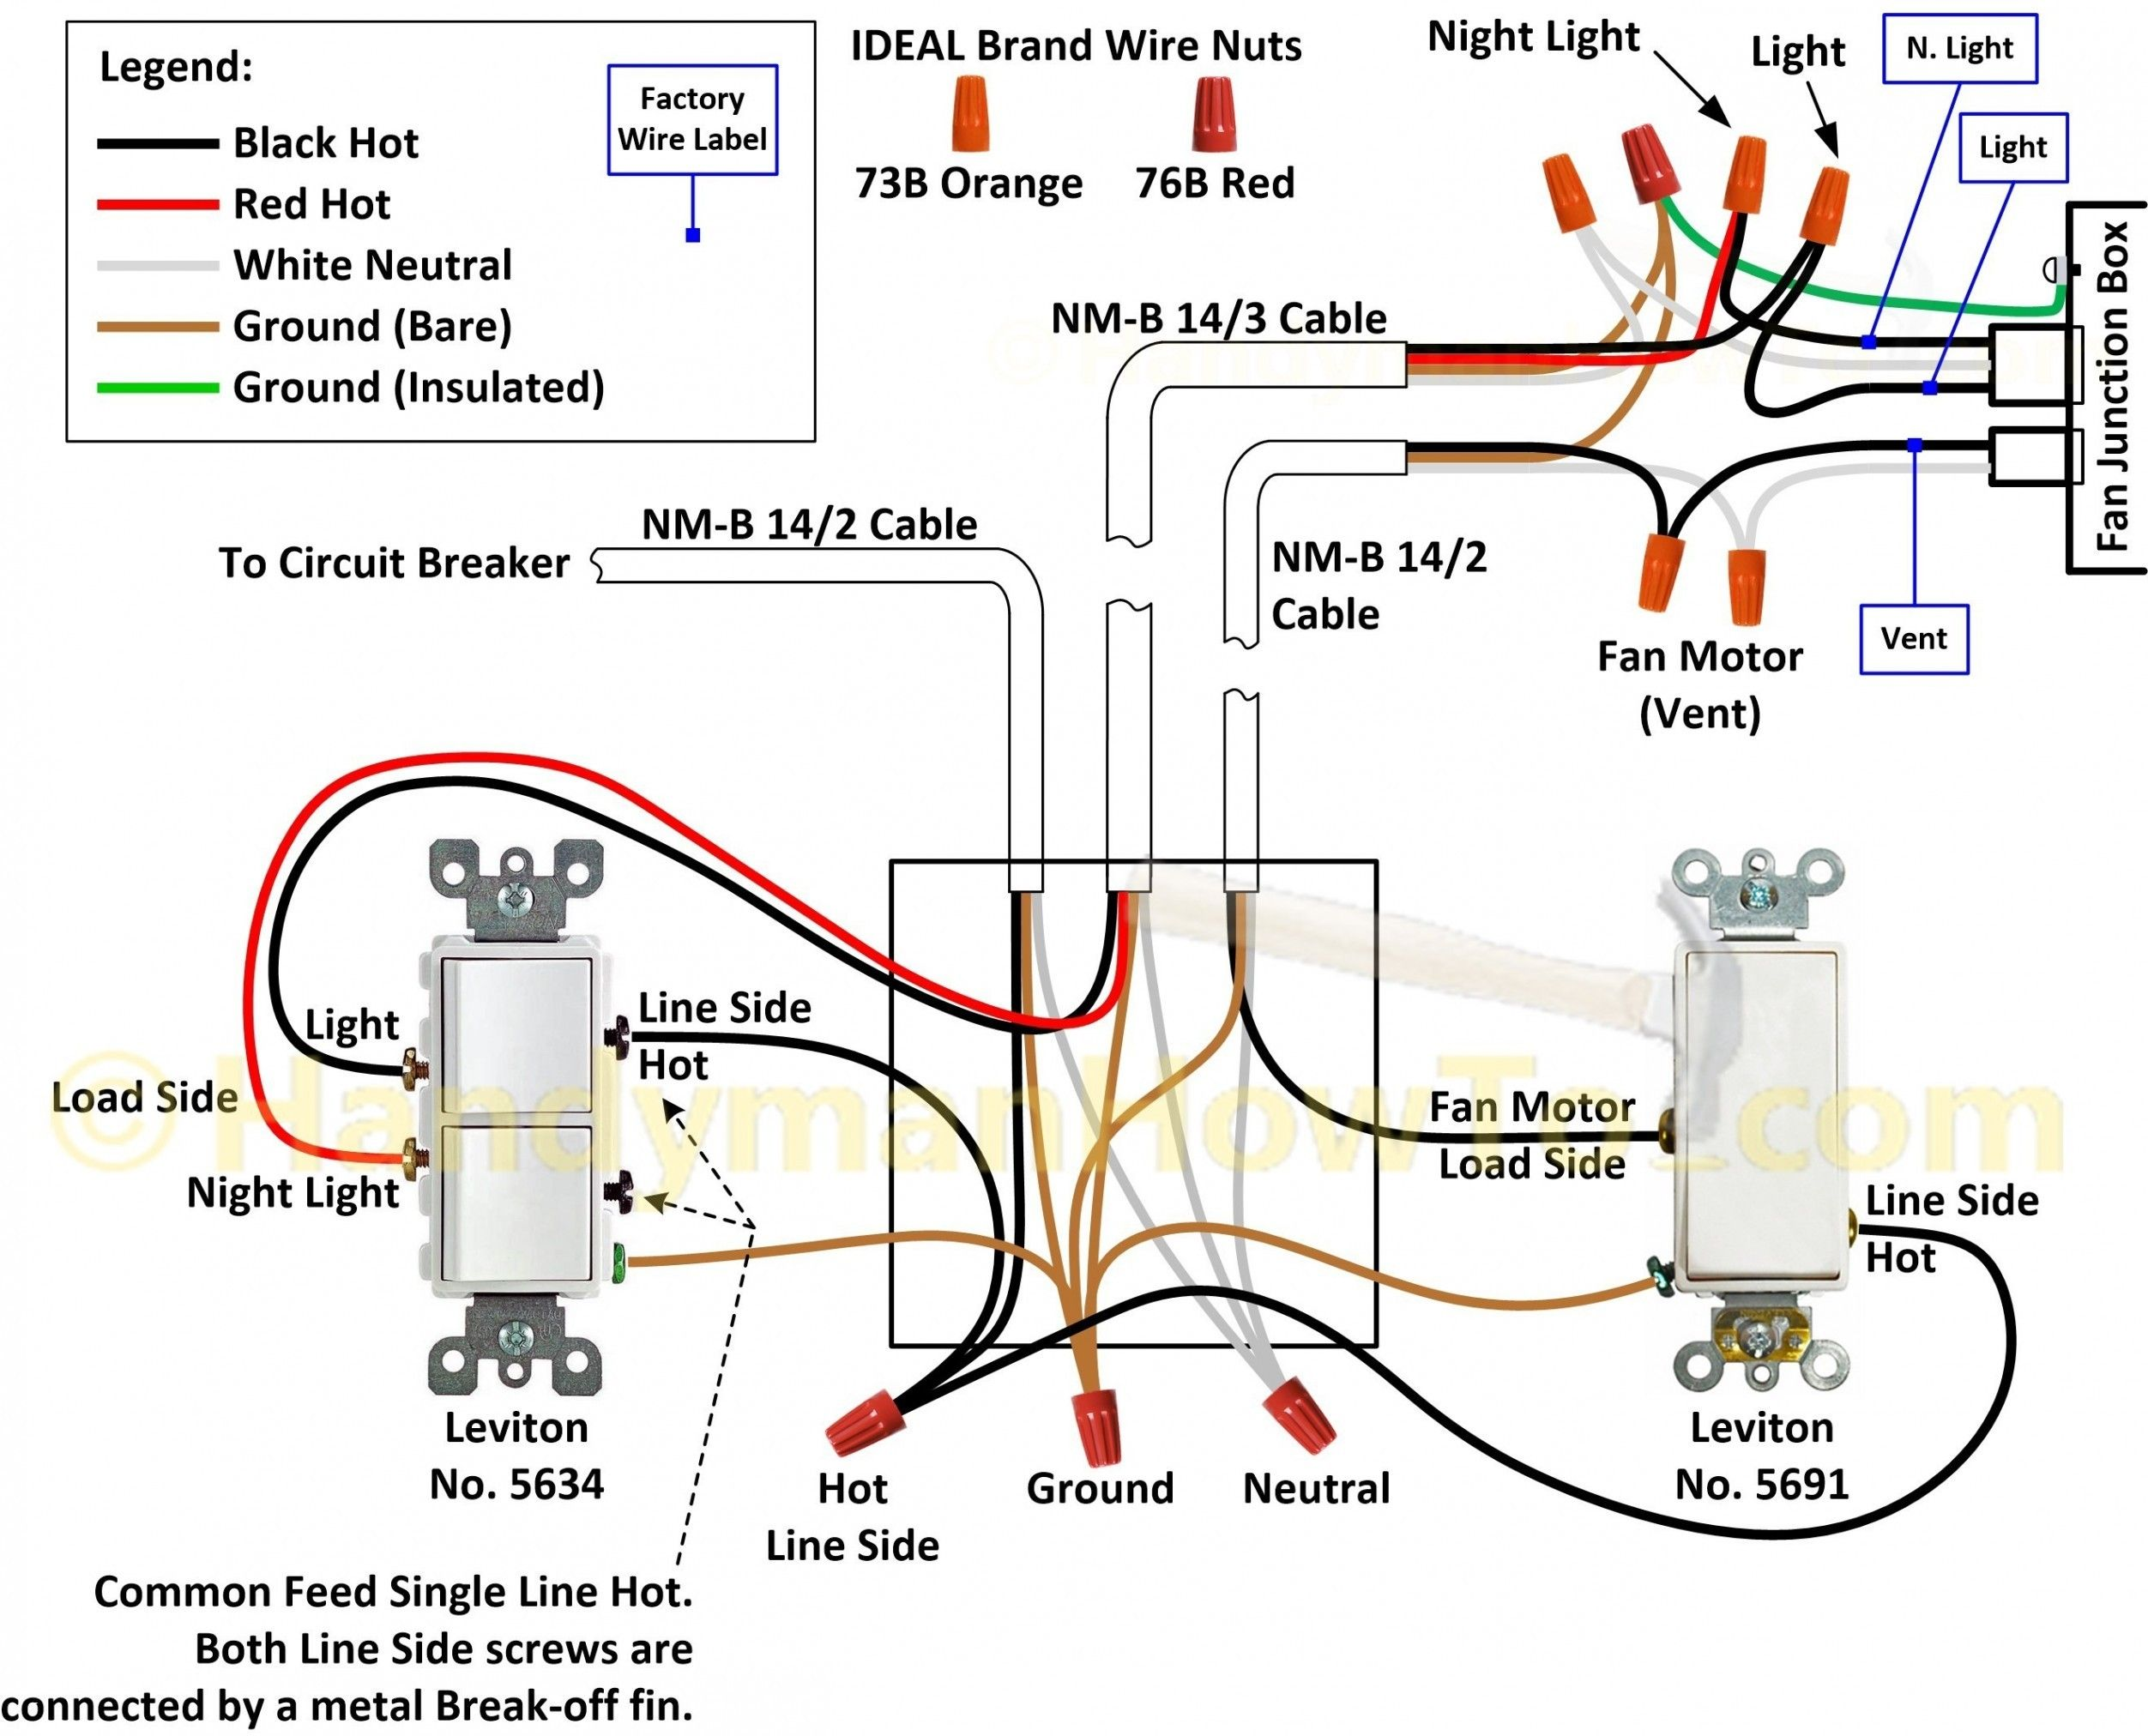 New Light Switch Wire Colors Diagram Wiringdiagram Diagramming Diagramm Visuals Visualisation Light Switch Wiring Ceiling Fan Switch Ceiling Fan Wiring